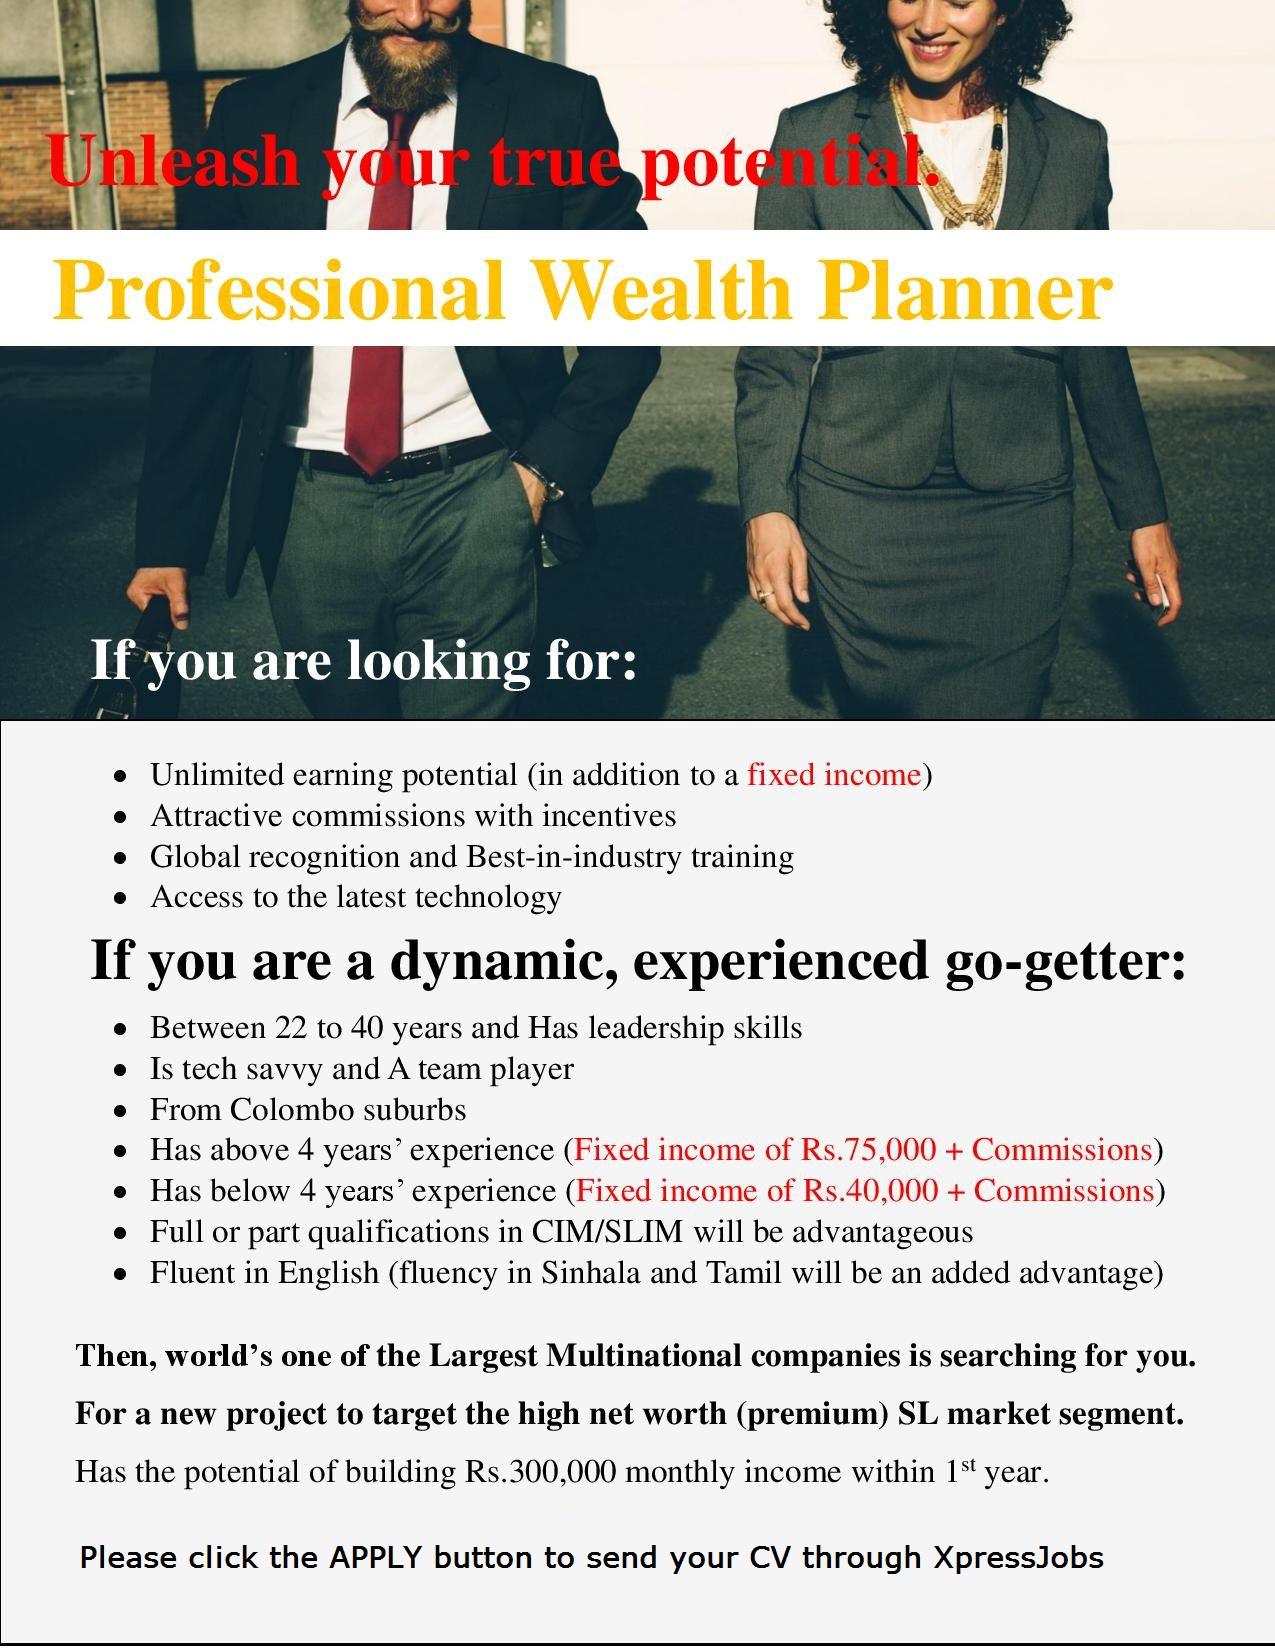 Wealth Planners - A Leading Multinational Company | XpressJobs